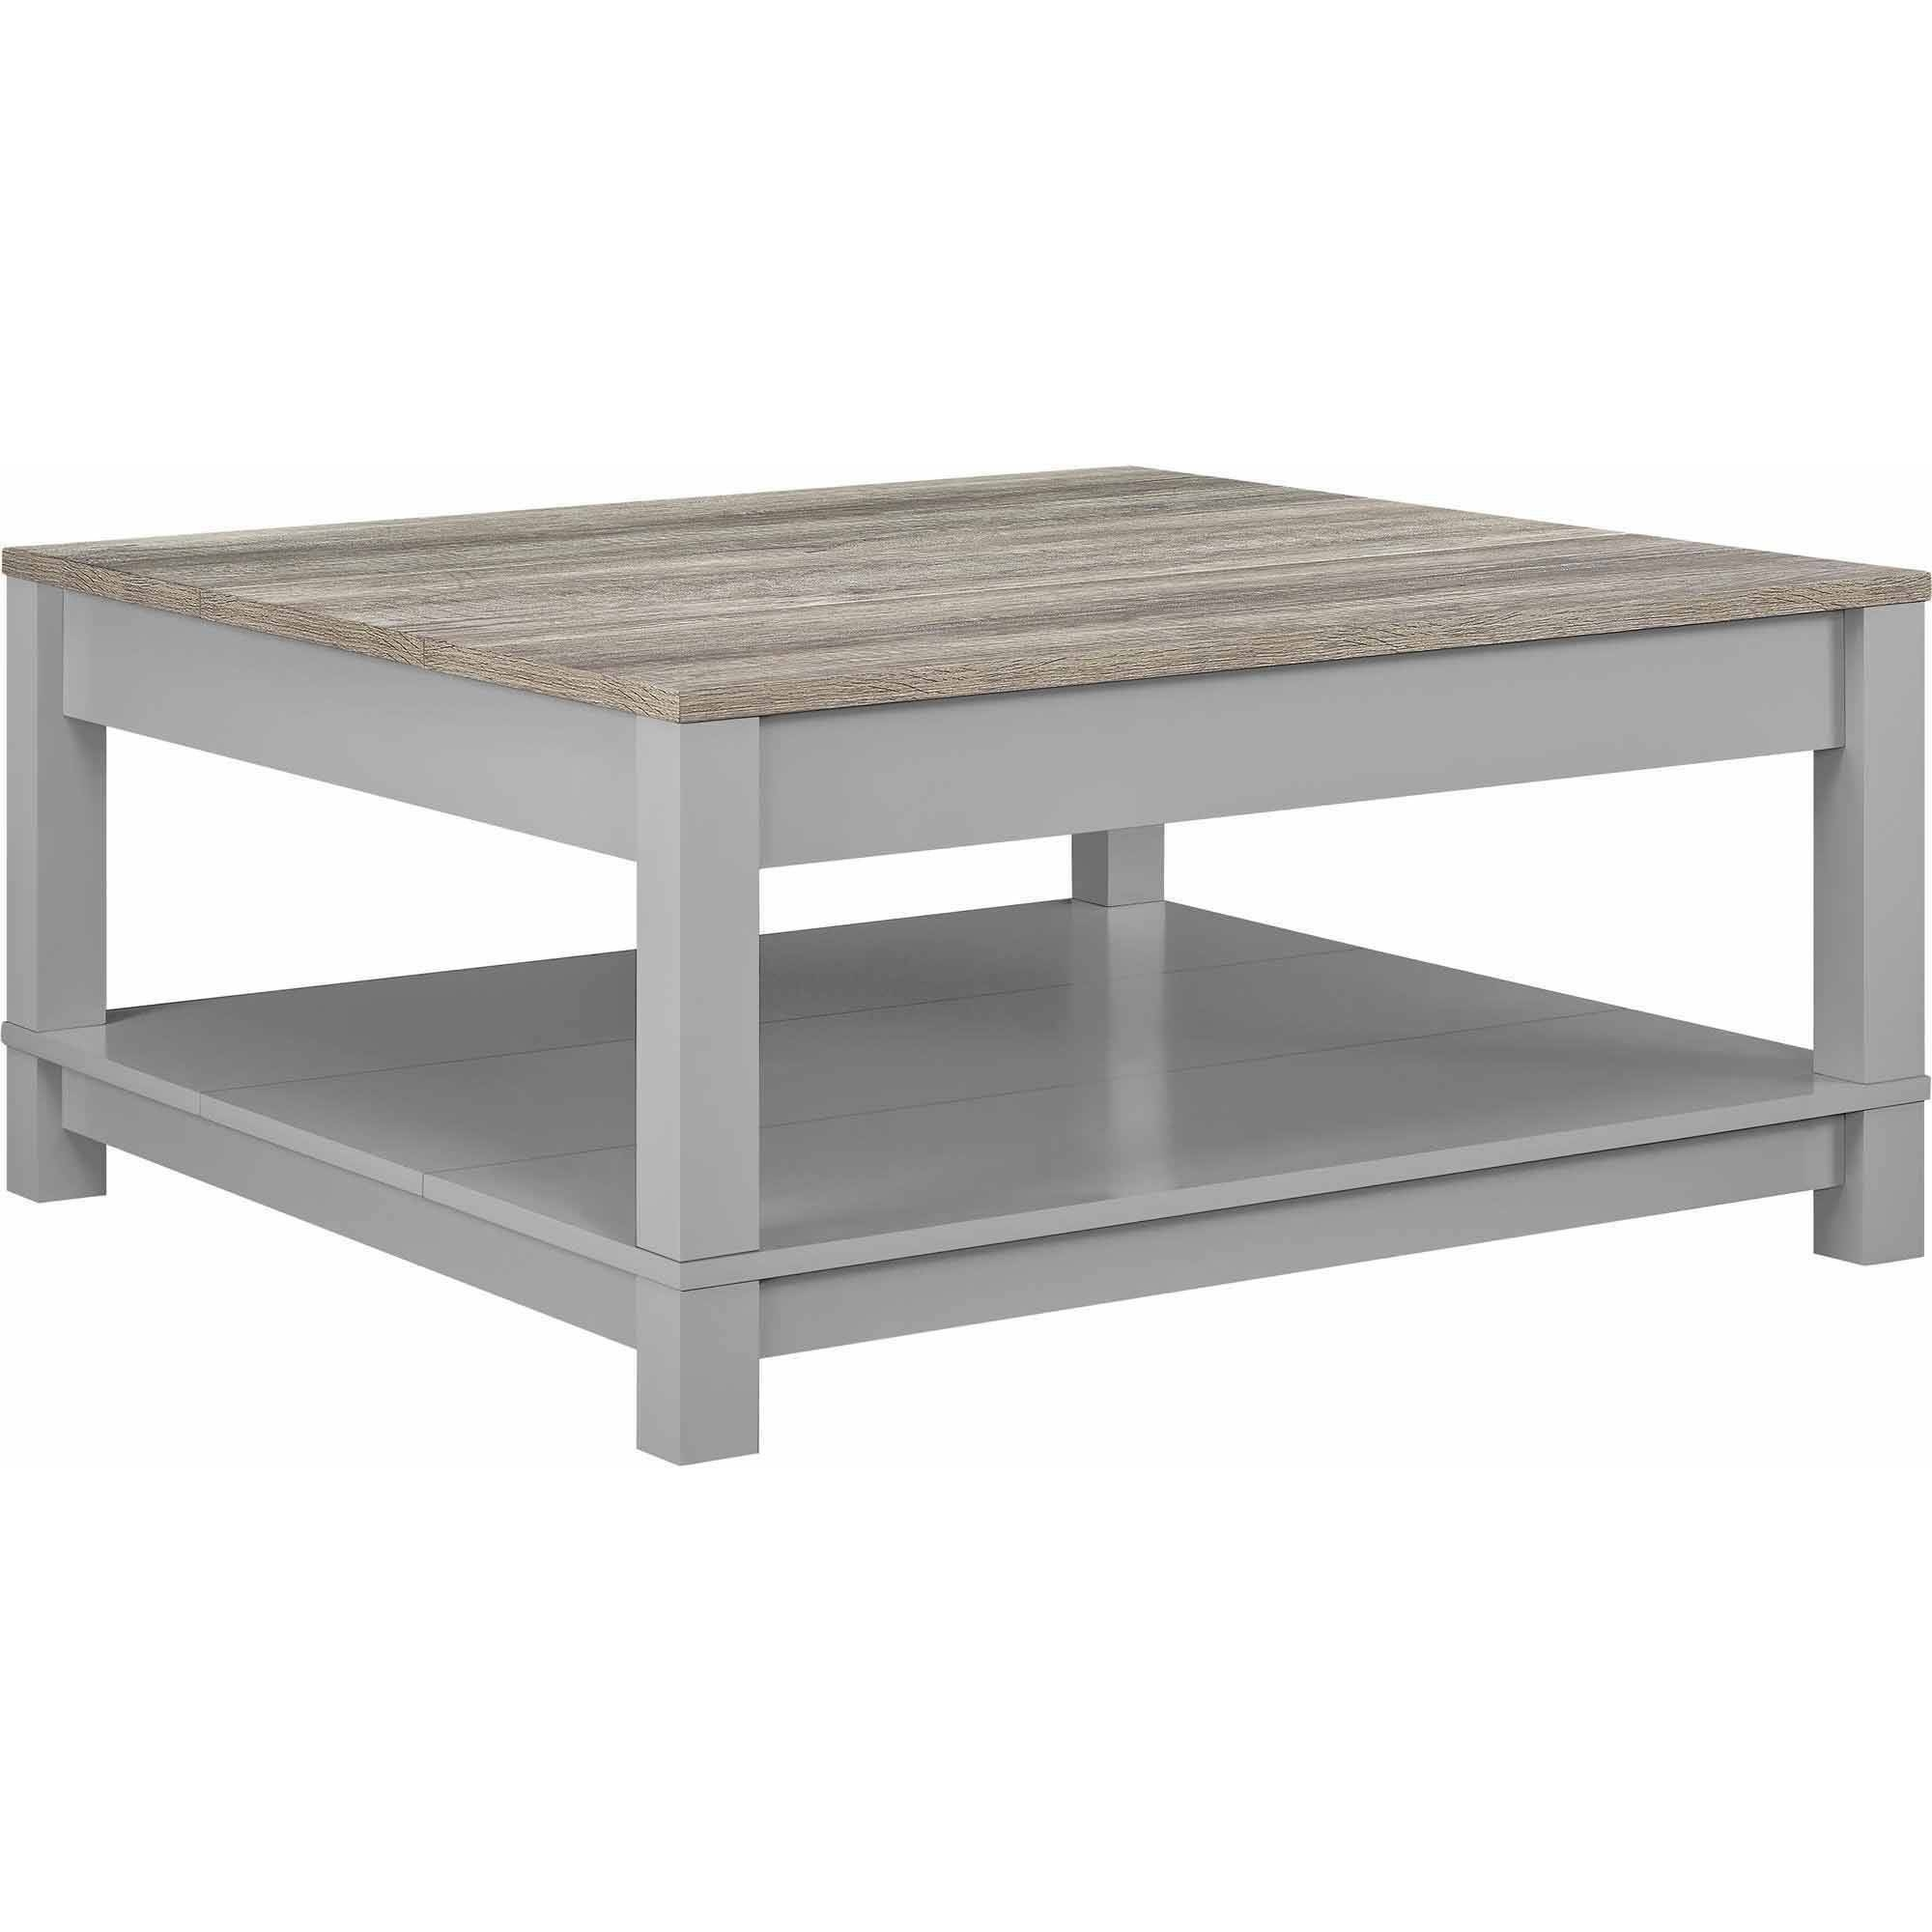 Better Homes And Gardens Langley Bay Coffee Table, Gray/sonoma Oak within Grey Coffee Tables (Image 5 of 30)